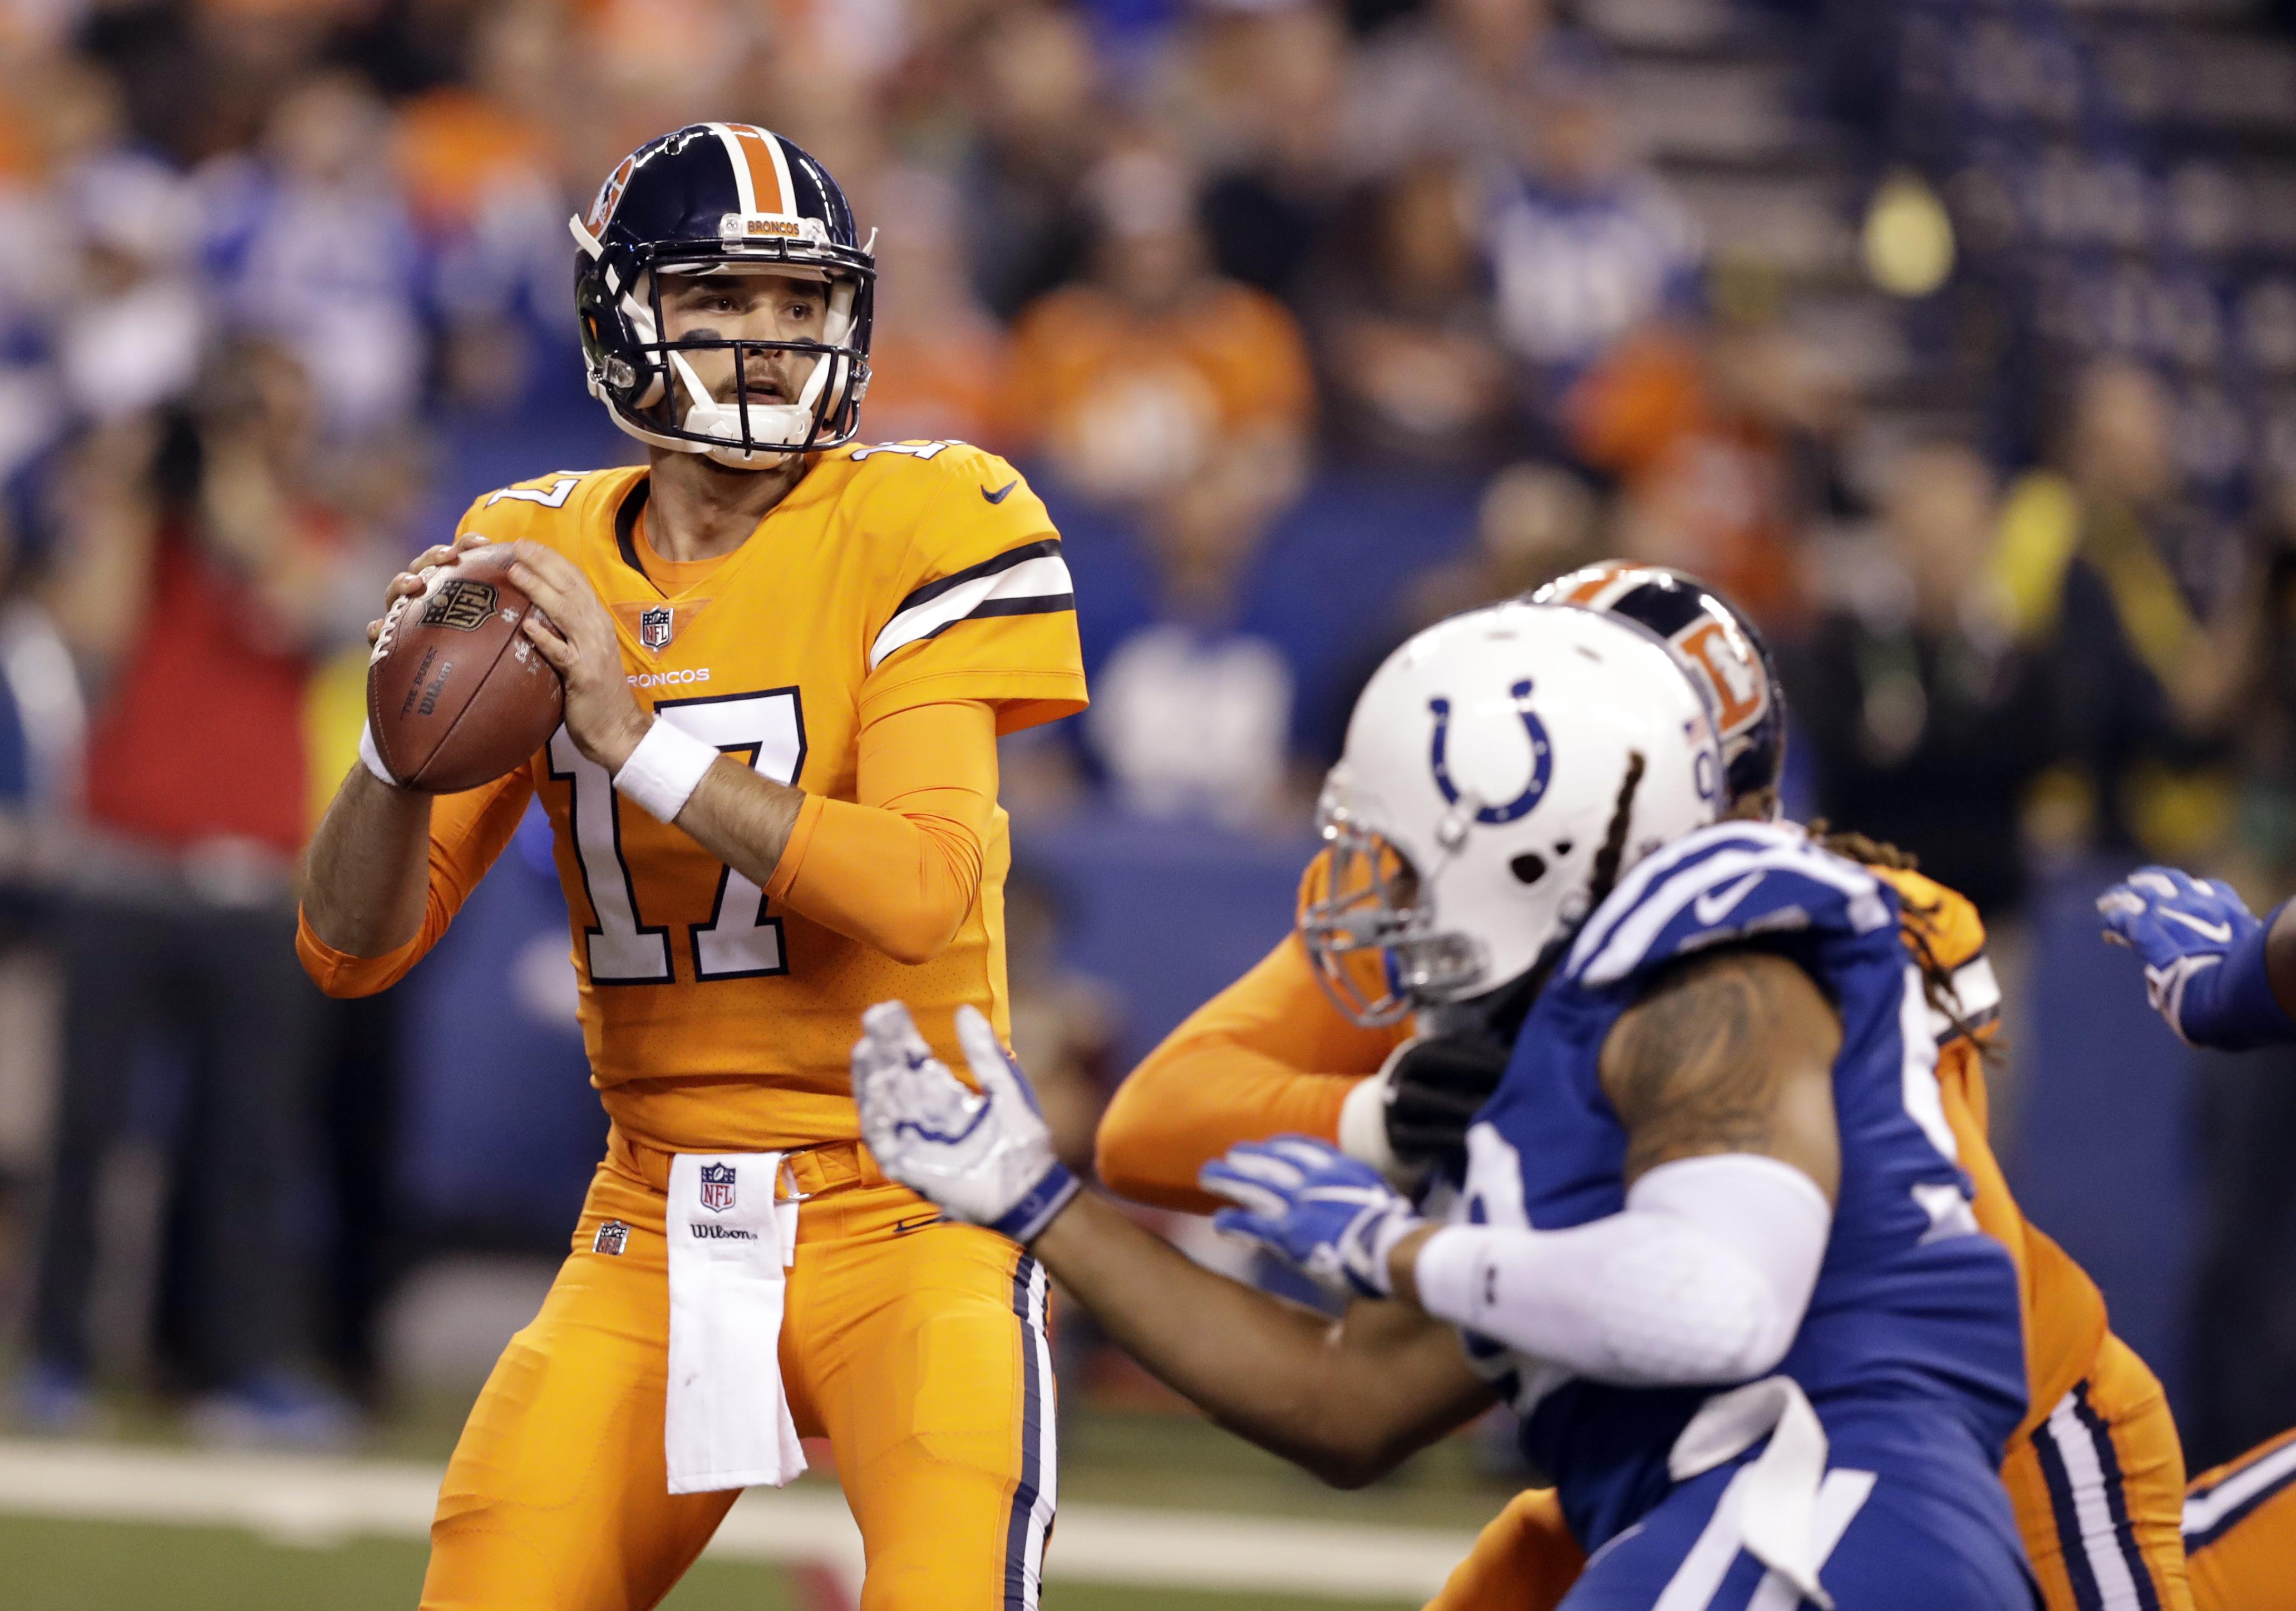 eb44f8052 QB Brock Osweiler signs 1-year deal with Dolphins | The Spokesman-Review